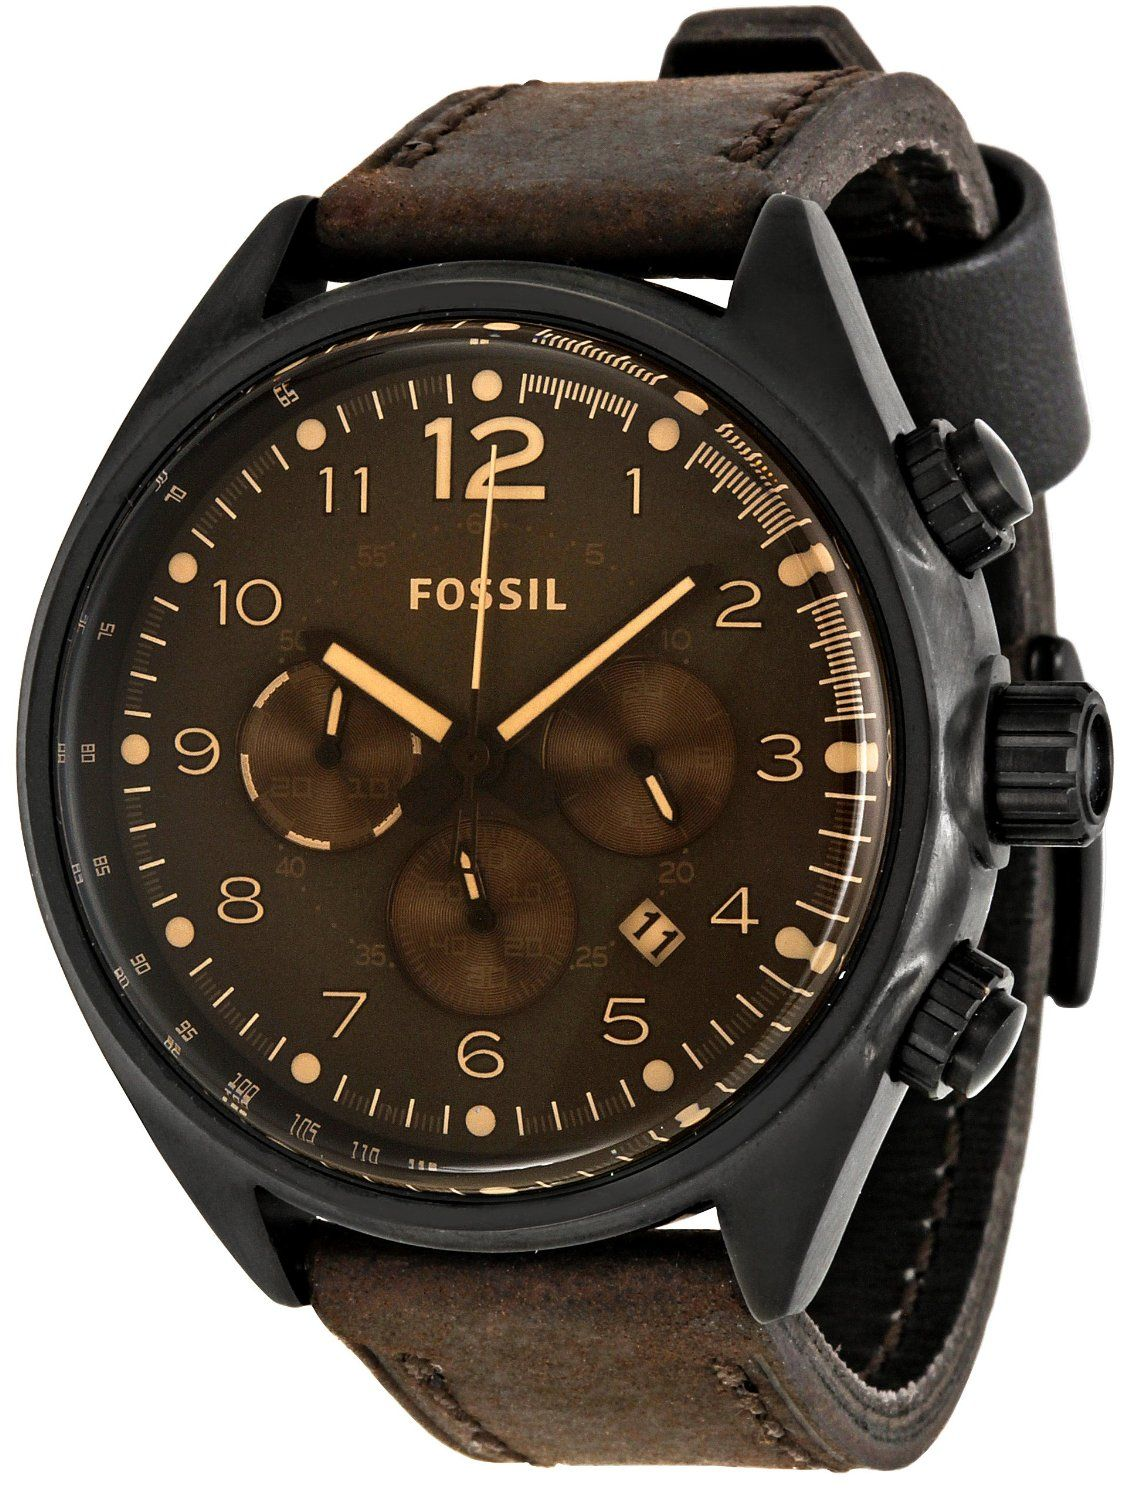 Fossil Men s CH2782 Flight Brown Dial Watch  Watches  Amazon.com ... 57ee712809